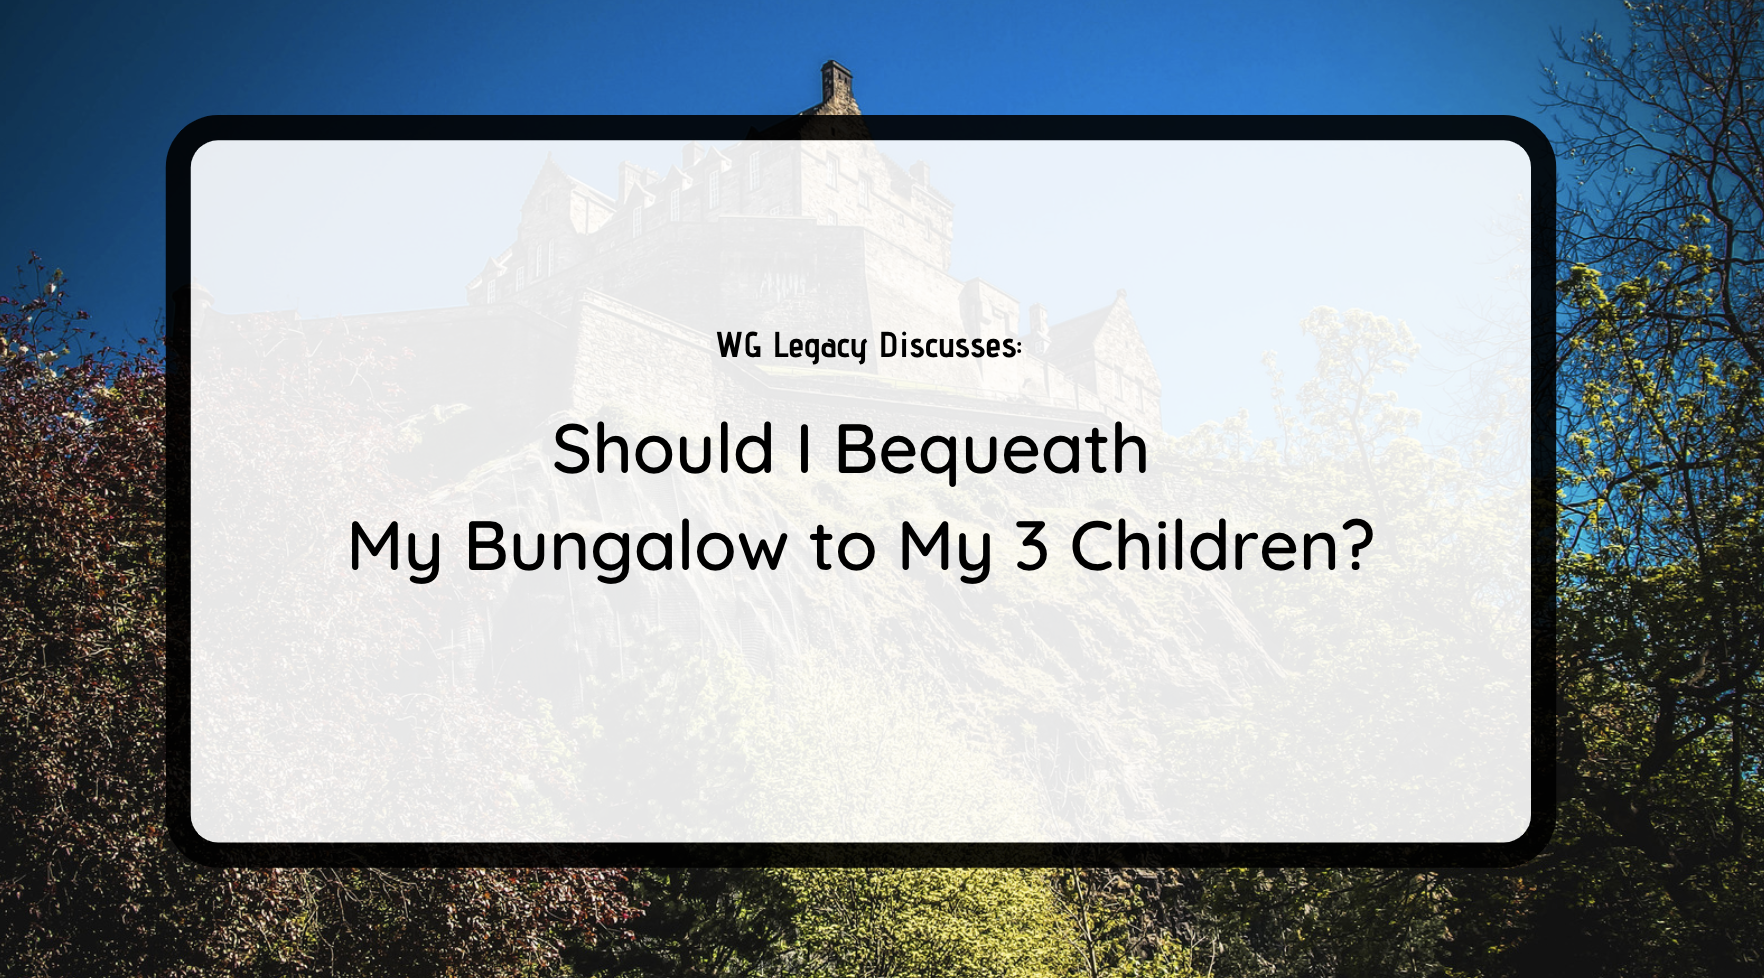 Should I Bequeath My Bungalow to My 3 Children?